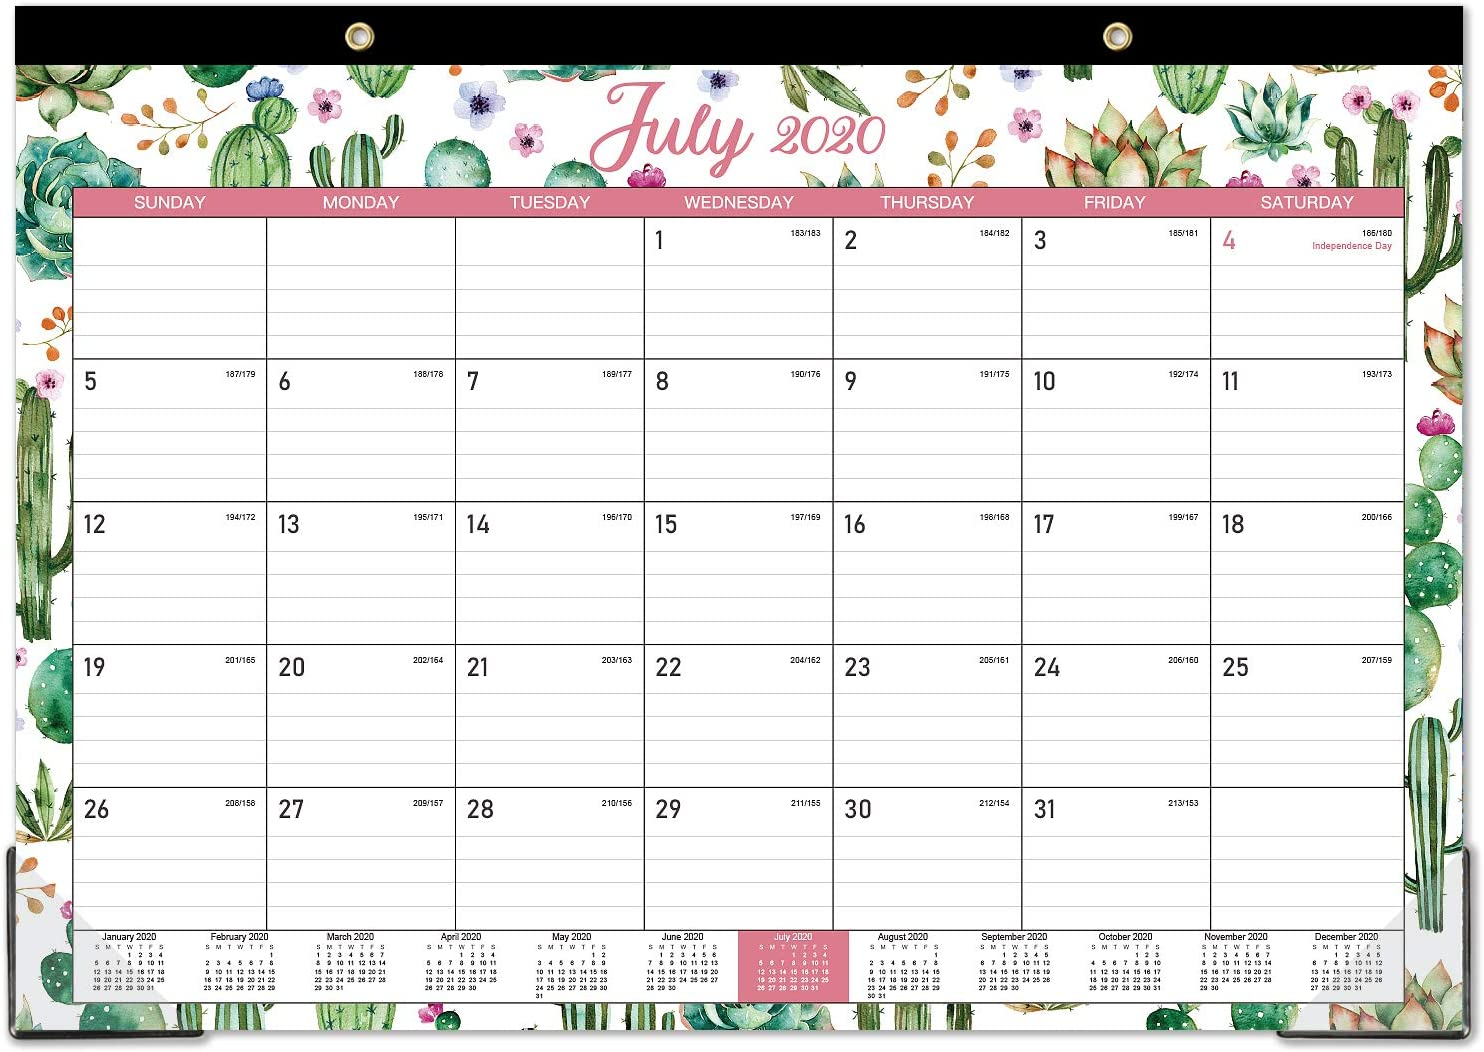 "2020-2021 Desk Calendar - 18 Months Desk Calendar, 17"" x 12"", Monthly Desk or Wall Calendar, July 2020 - December 2021, Large Ruled Blocks Perfect for Planning and Organizing for Home or Office"